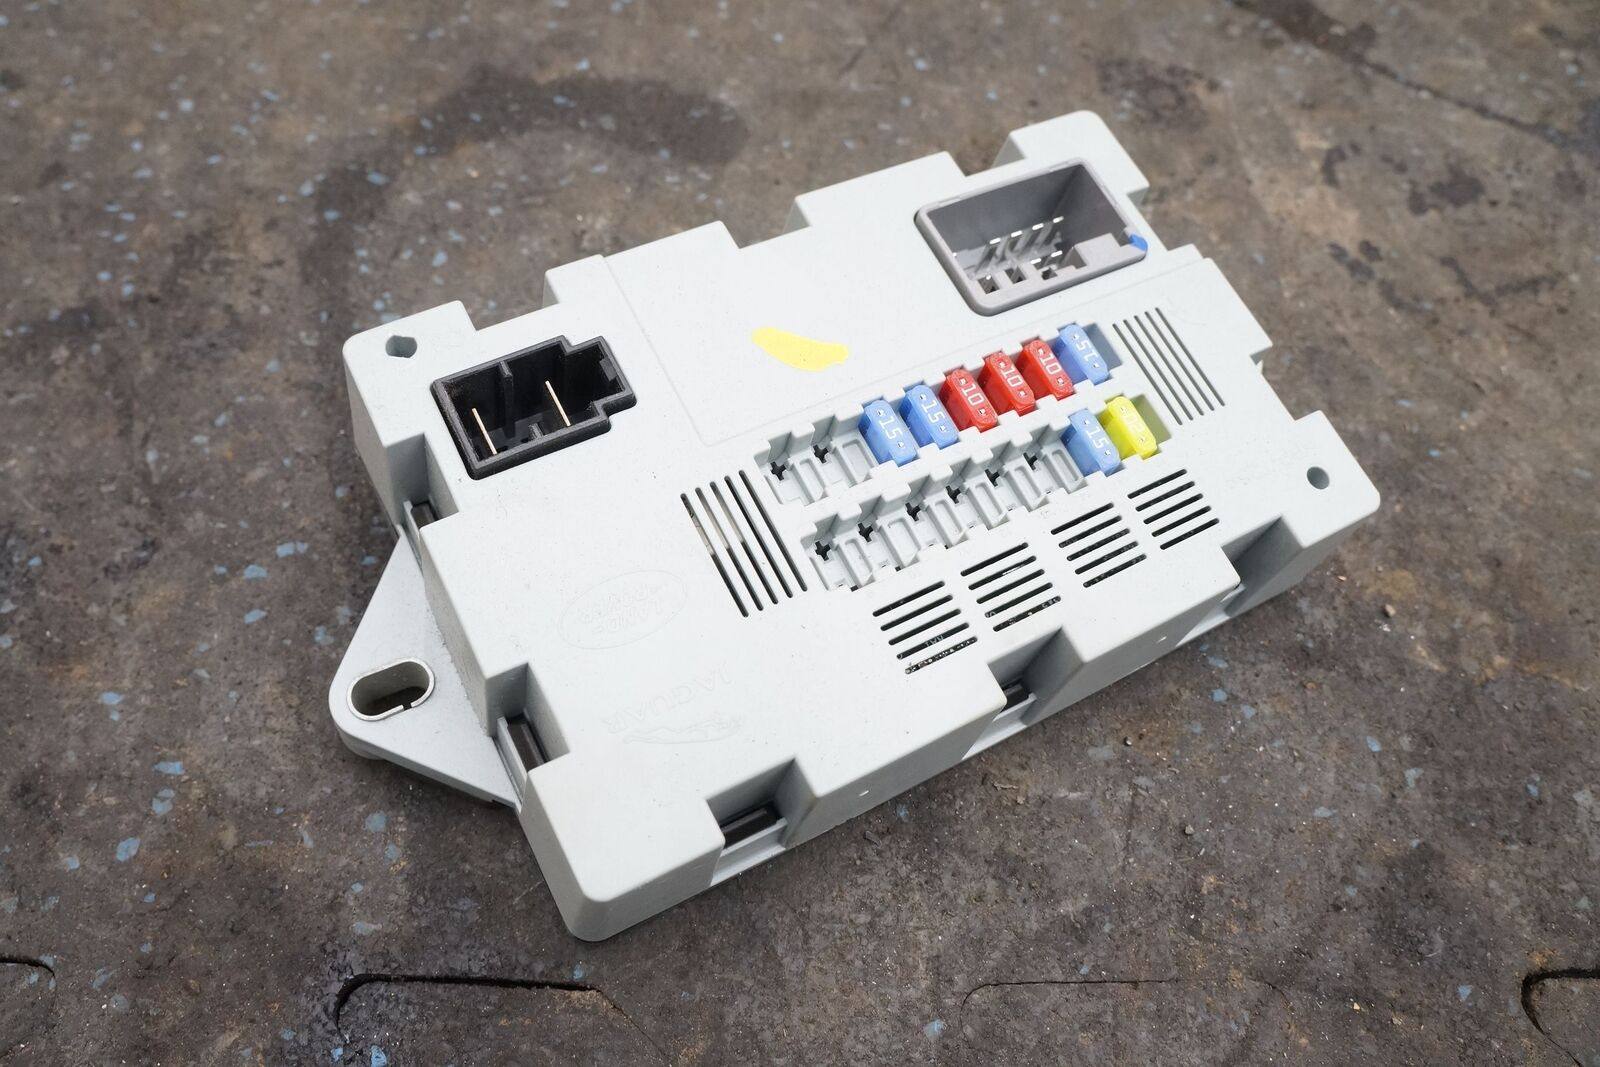 2013 Range Rover Fuse Box Simple Wiring Diagram 04 Kenworth Rear Luggage Compartment Cabin Lr041091 Oem Ford Fiesta